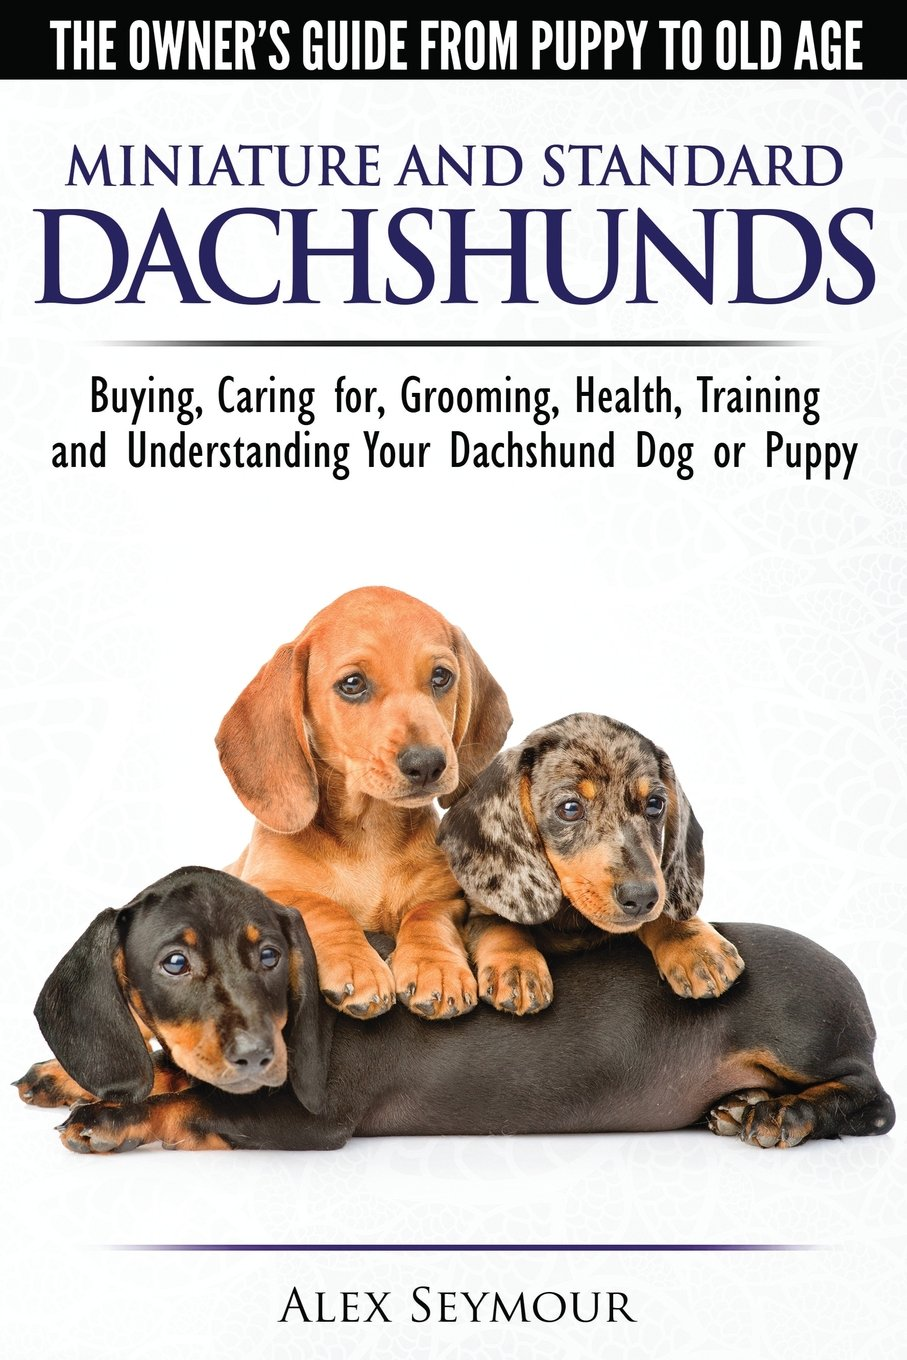 Dachshunds – The Owner's Guide From Puppy To Old Age – Choosing, Caring for, Grooming, Health, Training and Understanding Your Standard or Miniature Dachshund Dog